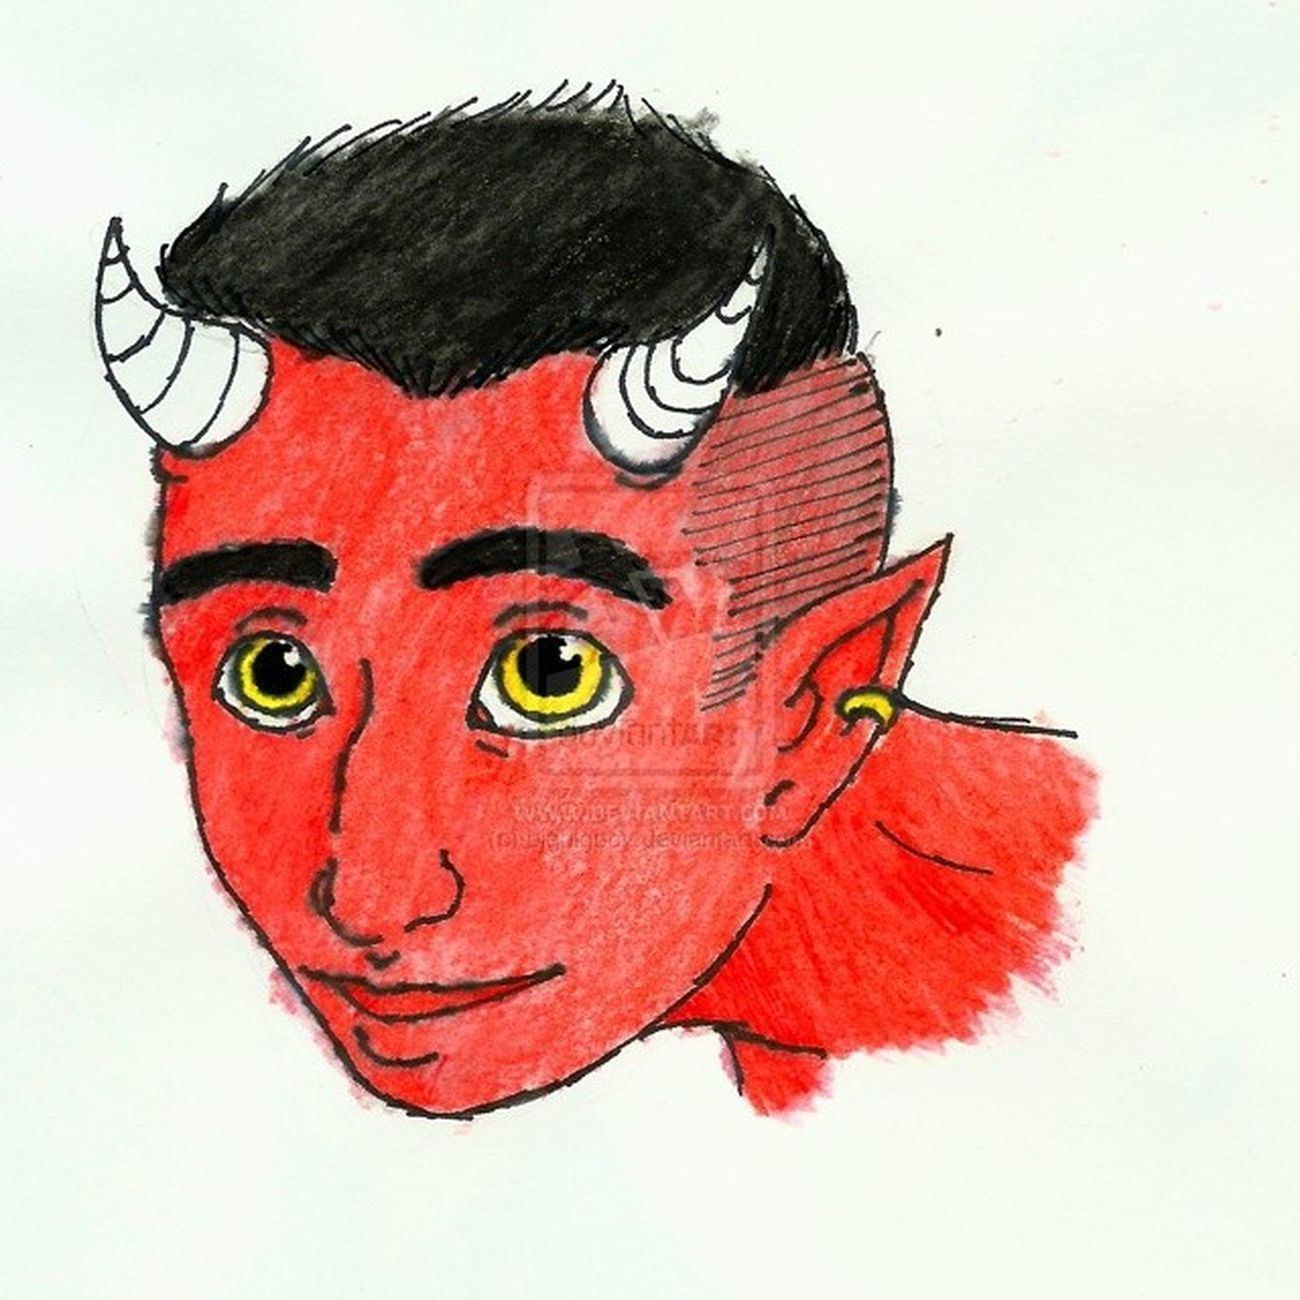 Draw Waterpencil Devil Demon Satan 666 Red Redskin Cartoon Horn Hornman Yelloweyes Divunser Djivúnçer